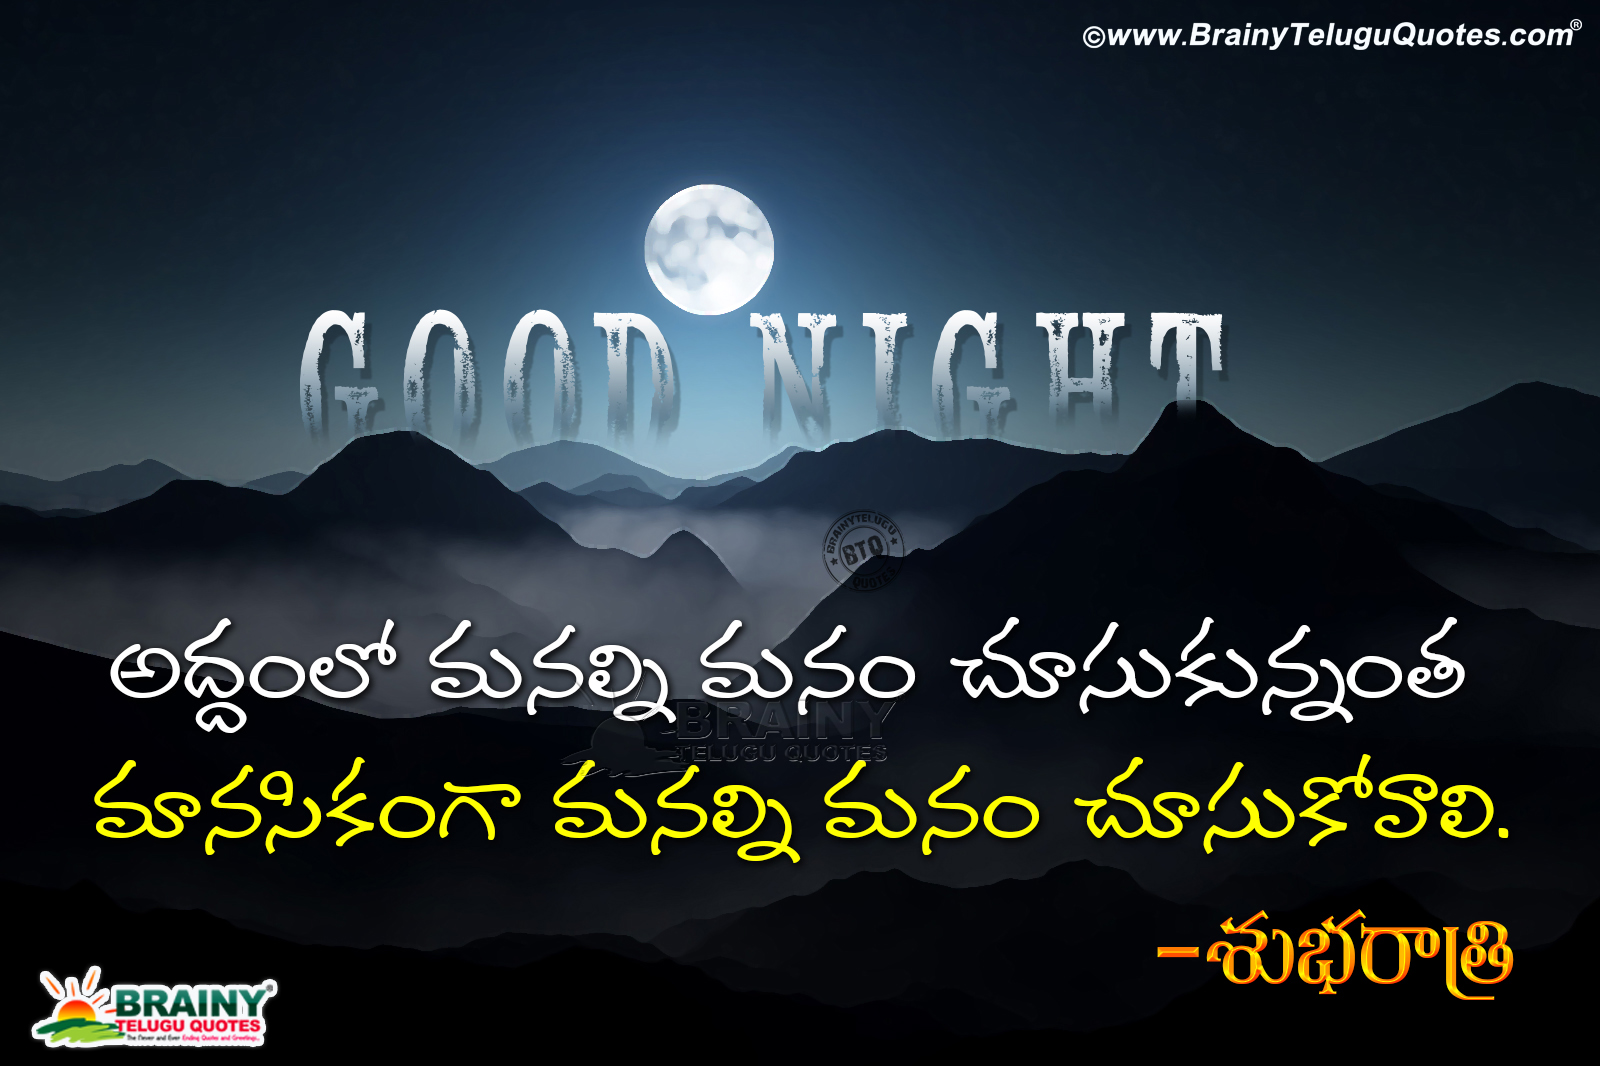 Best Good Night Telugu Quotes Hd Wallpapers-Self